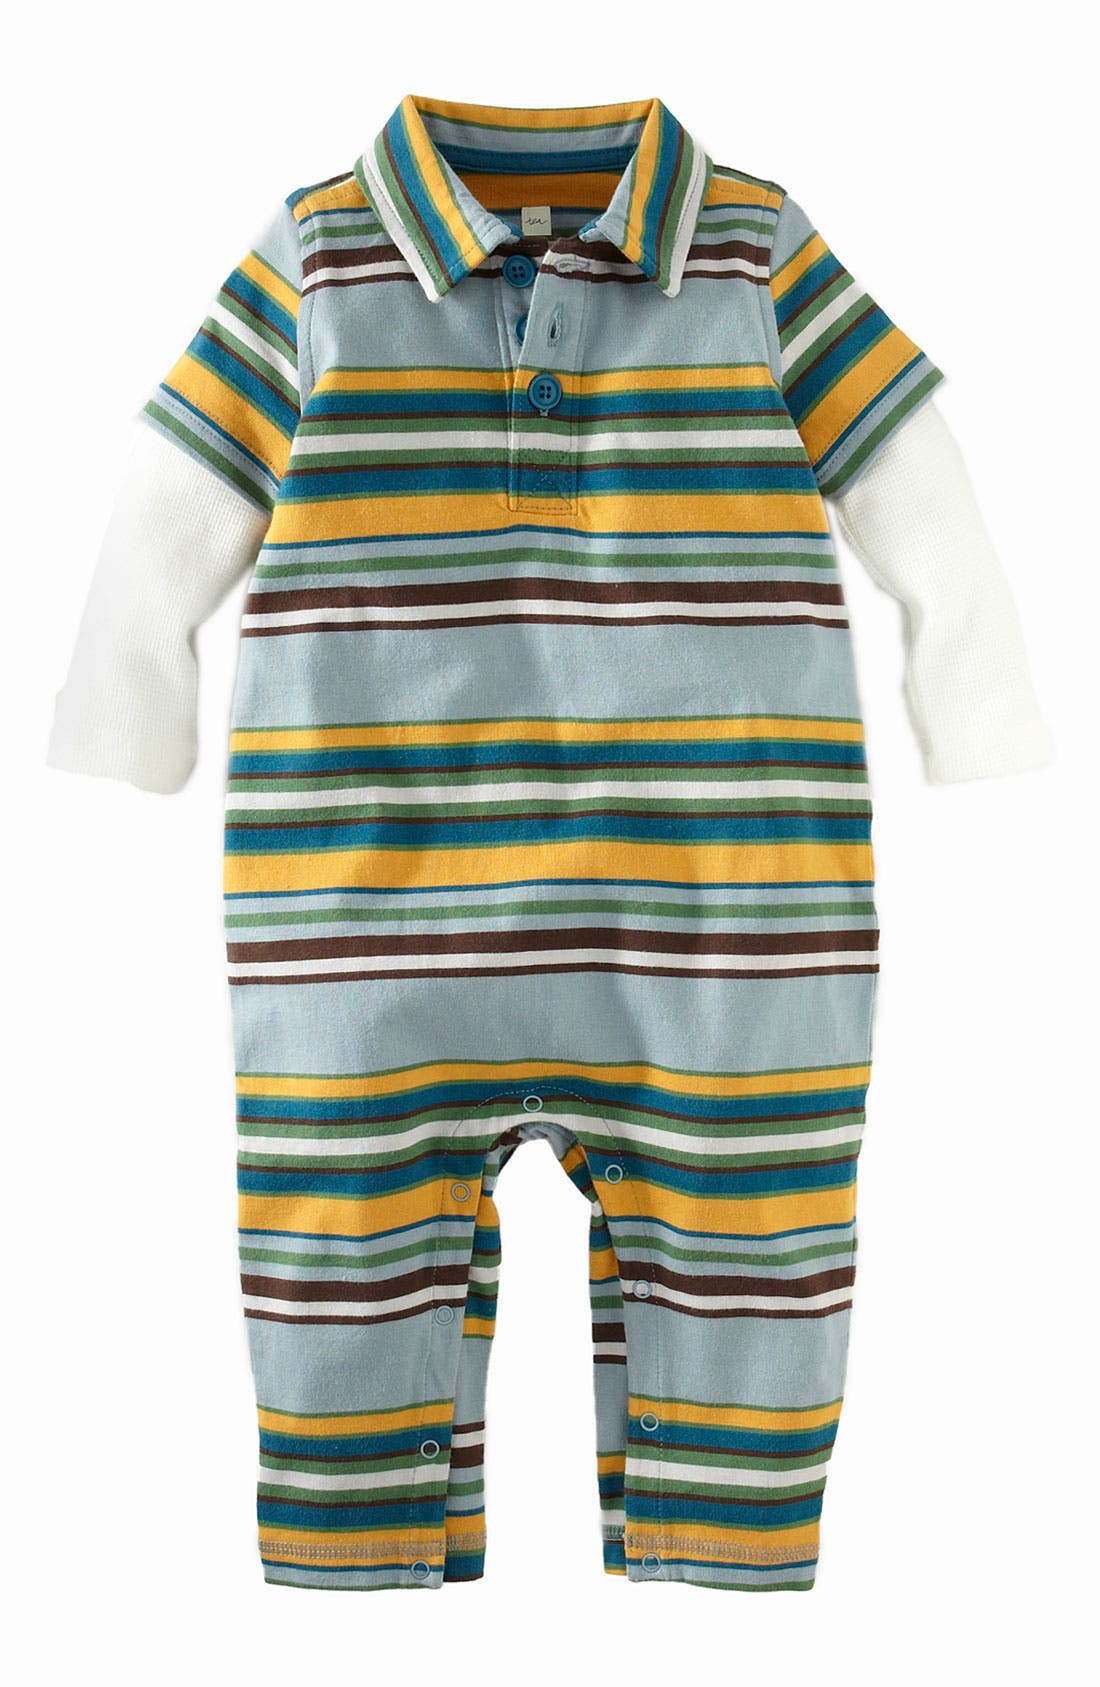 Alternate Image 1 Selected - Tea Collection 'Ski' Stripe Romper (Infant)